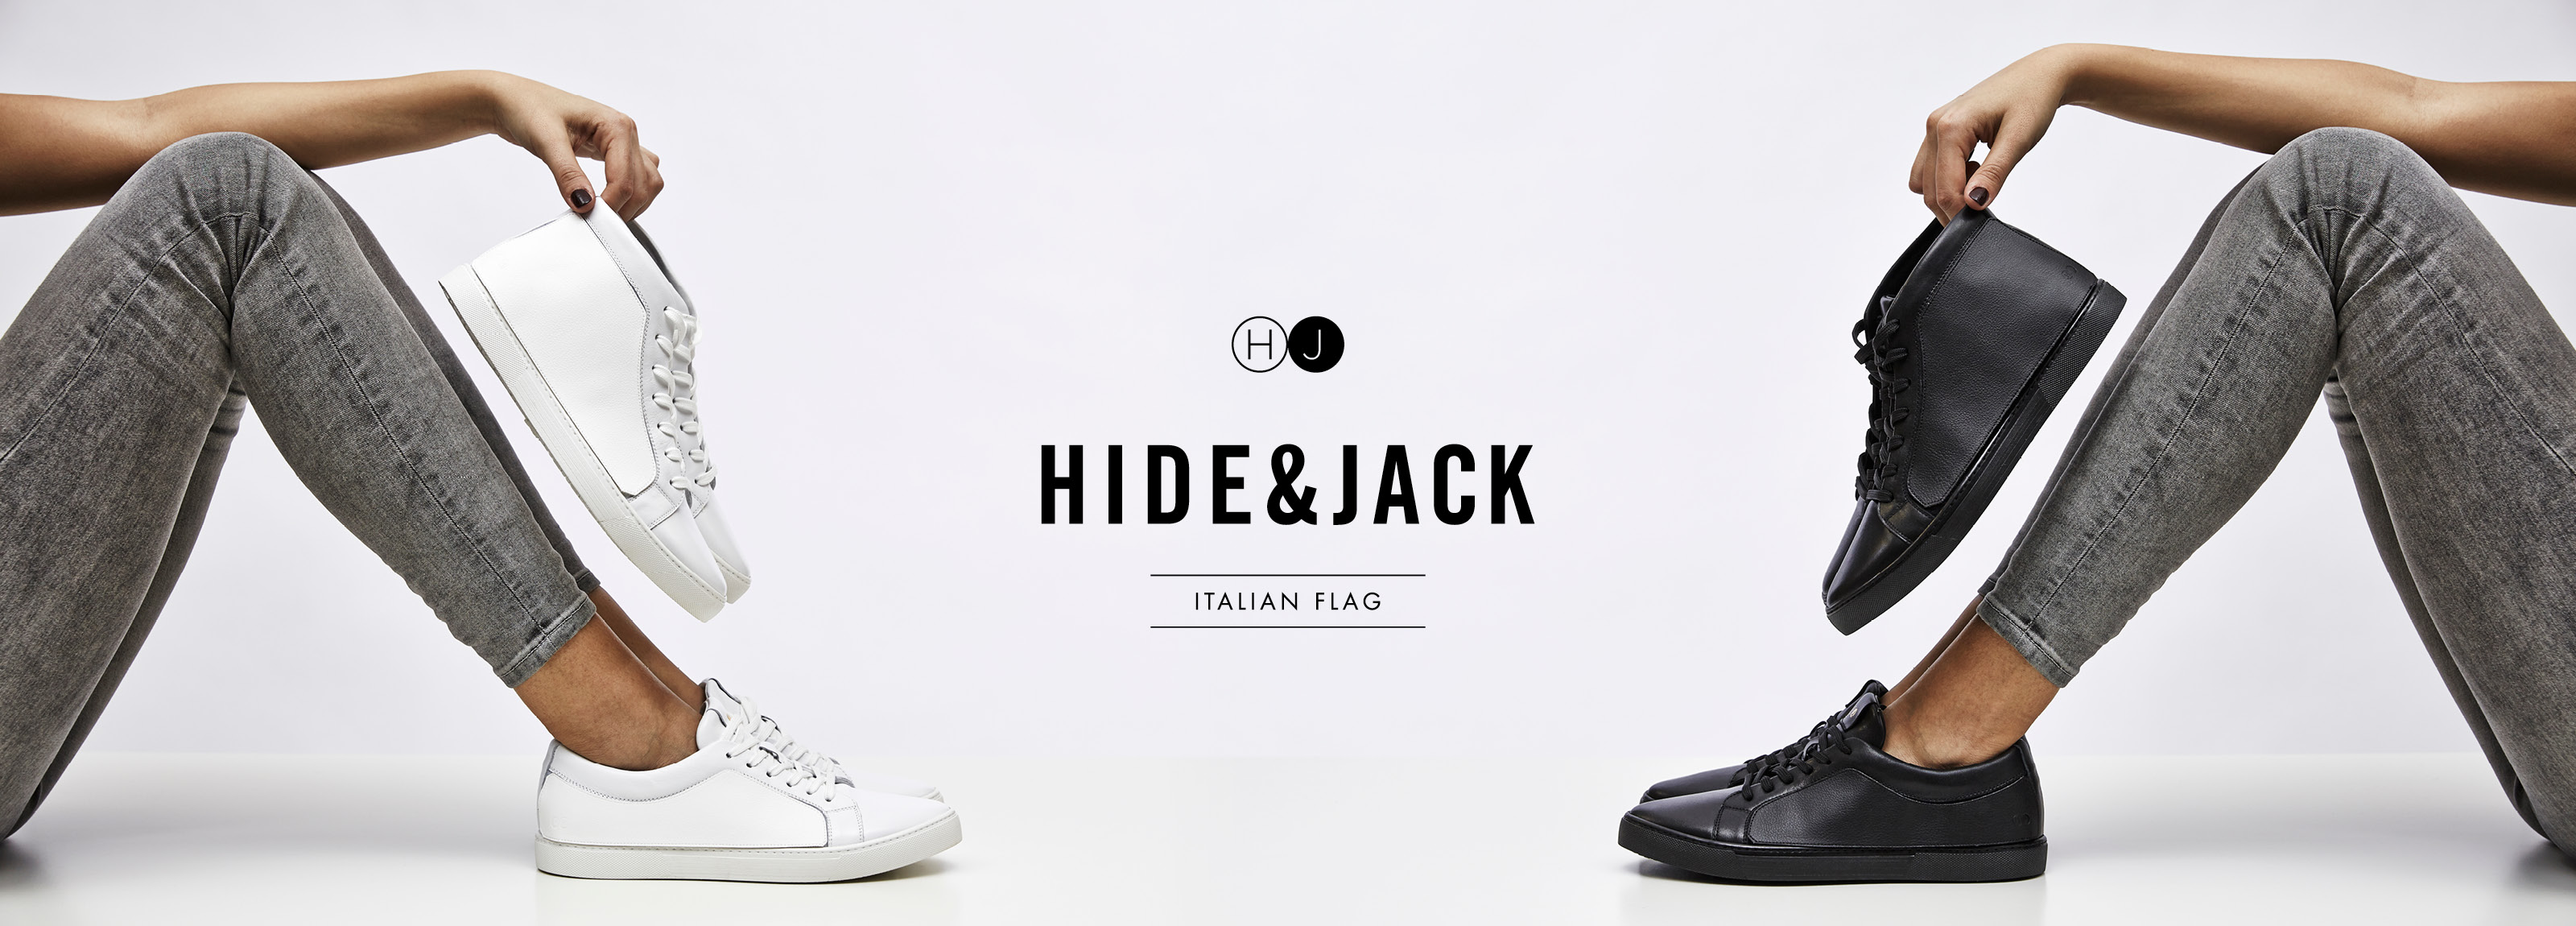 A global branding project signed by Hangar Design Group for Hide&Jack a new Italian shoe brand.